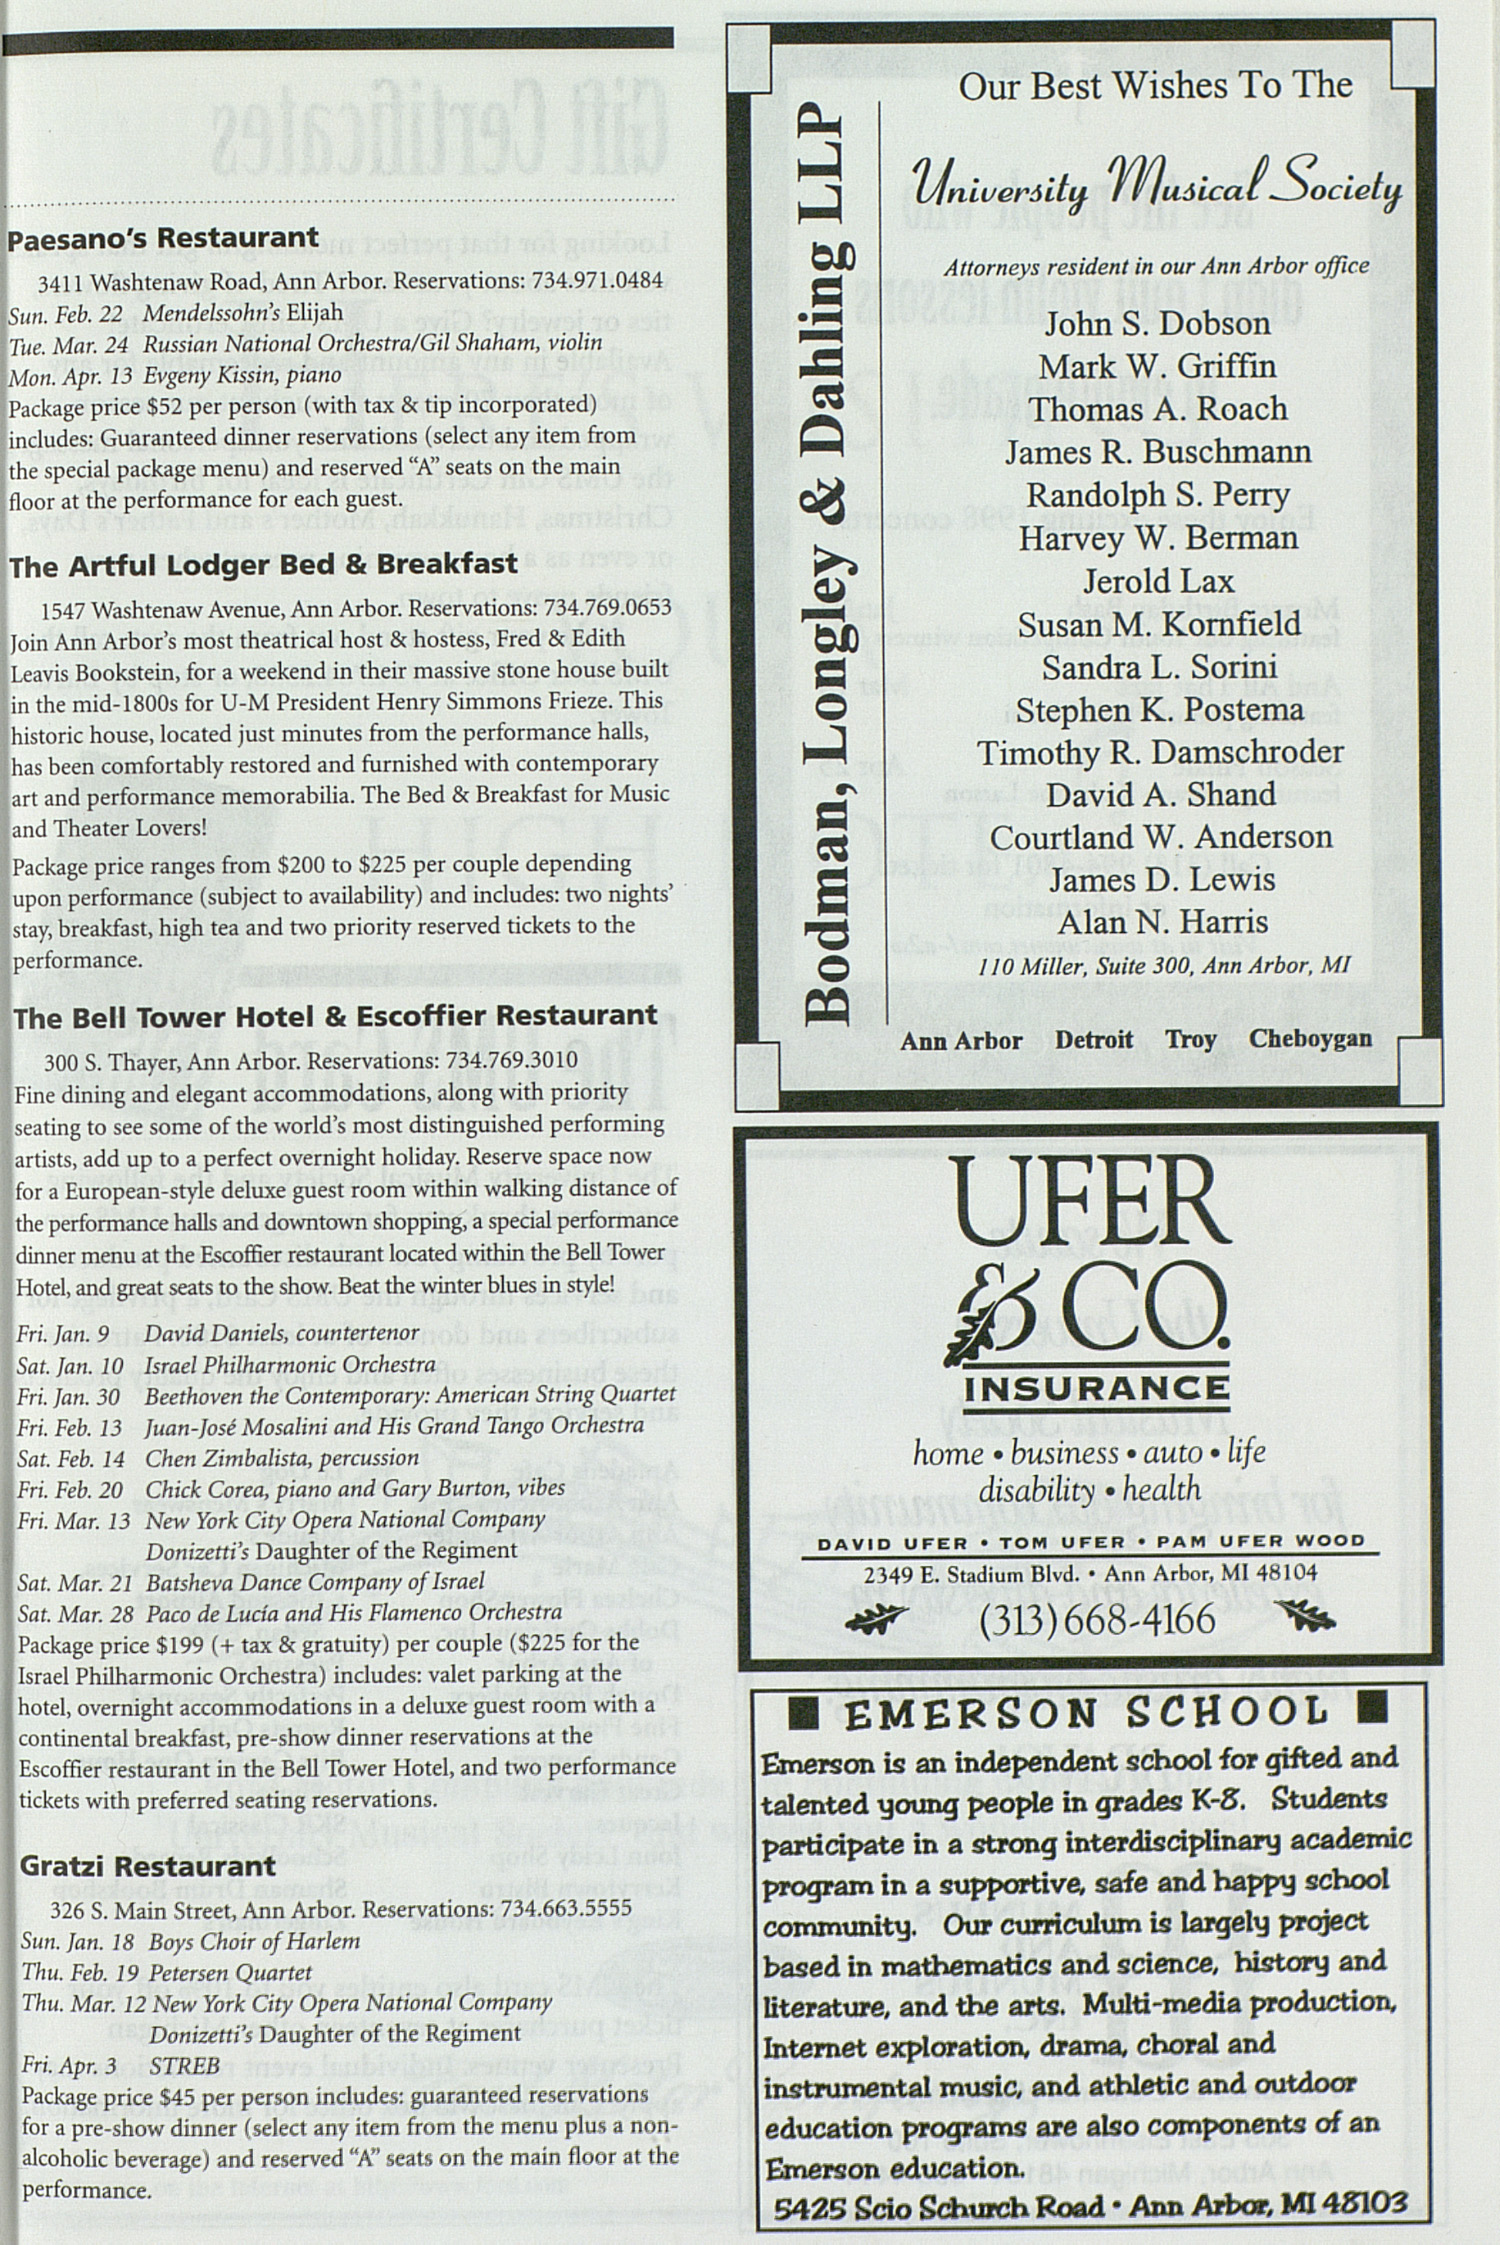 UMS Concert Program, Friday Apr. 03 To 13: University Musical Society: 1997-1998 Winter - Friday Apr. 03 To 13 --  image